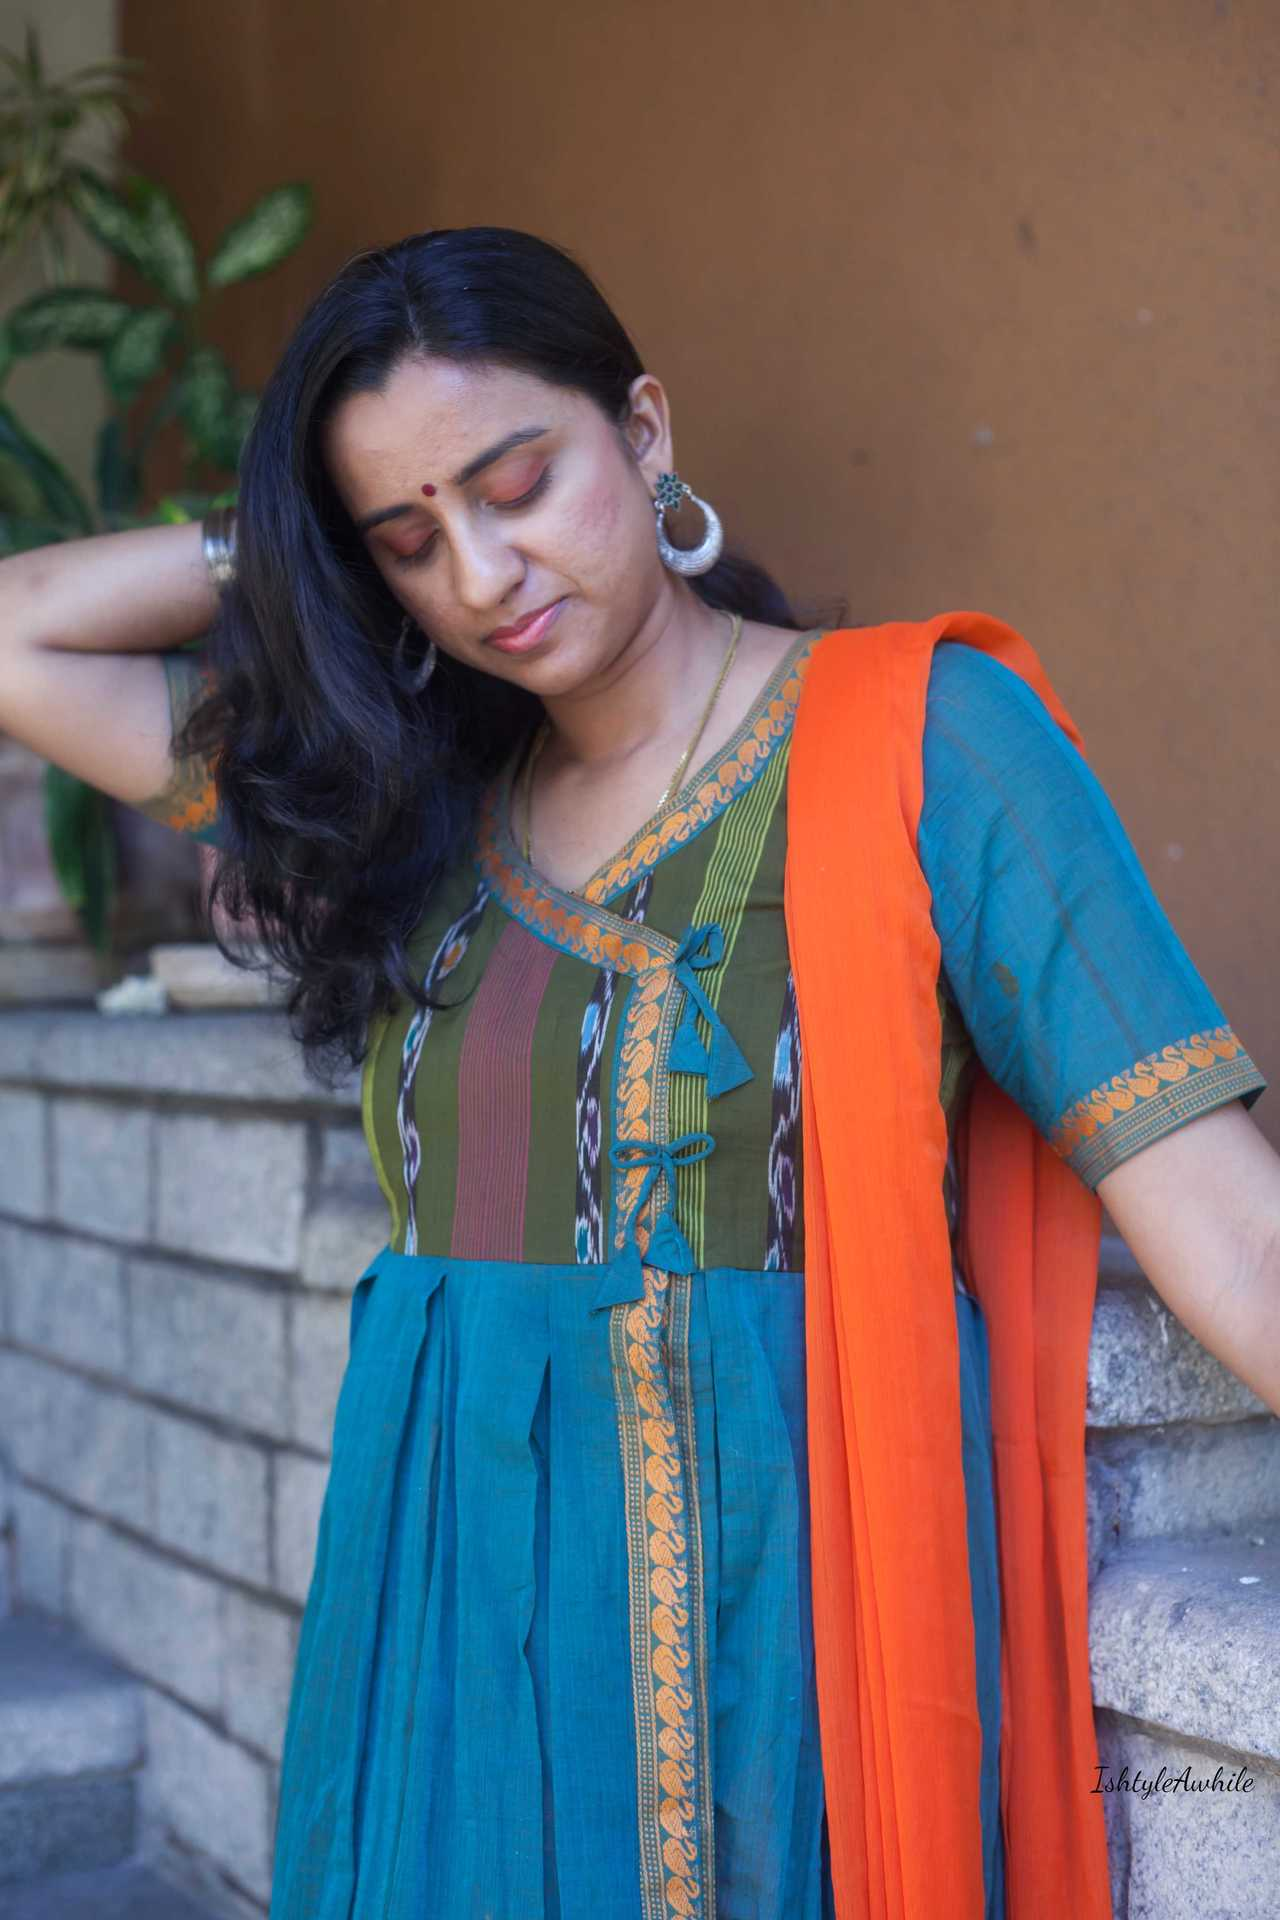 IshtyleAwhile - A Chennai based Indian Fashion Blog - green angrakha cotton kurta